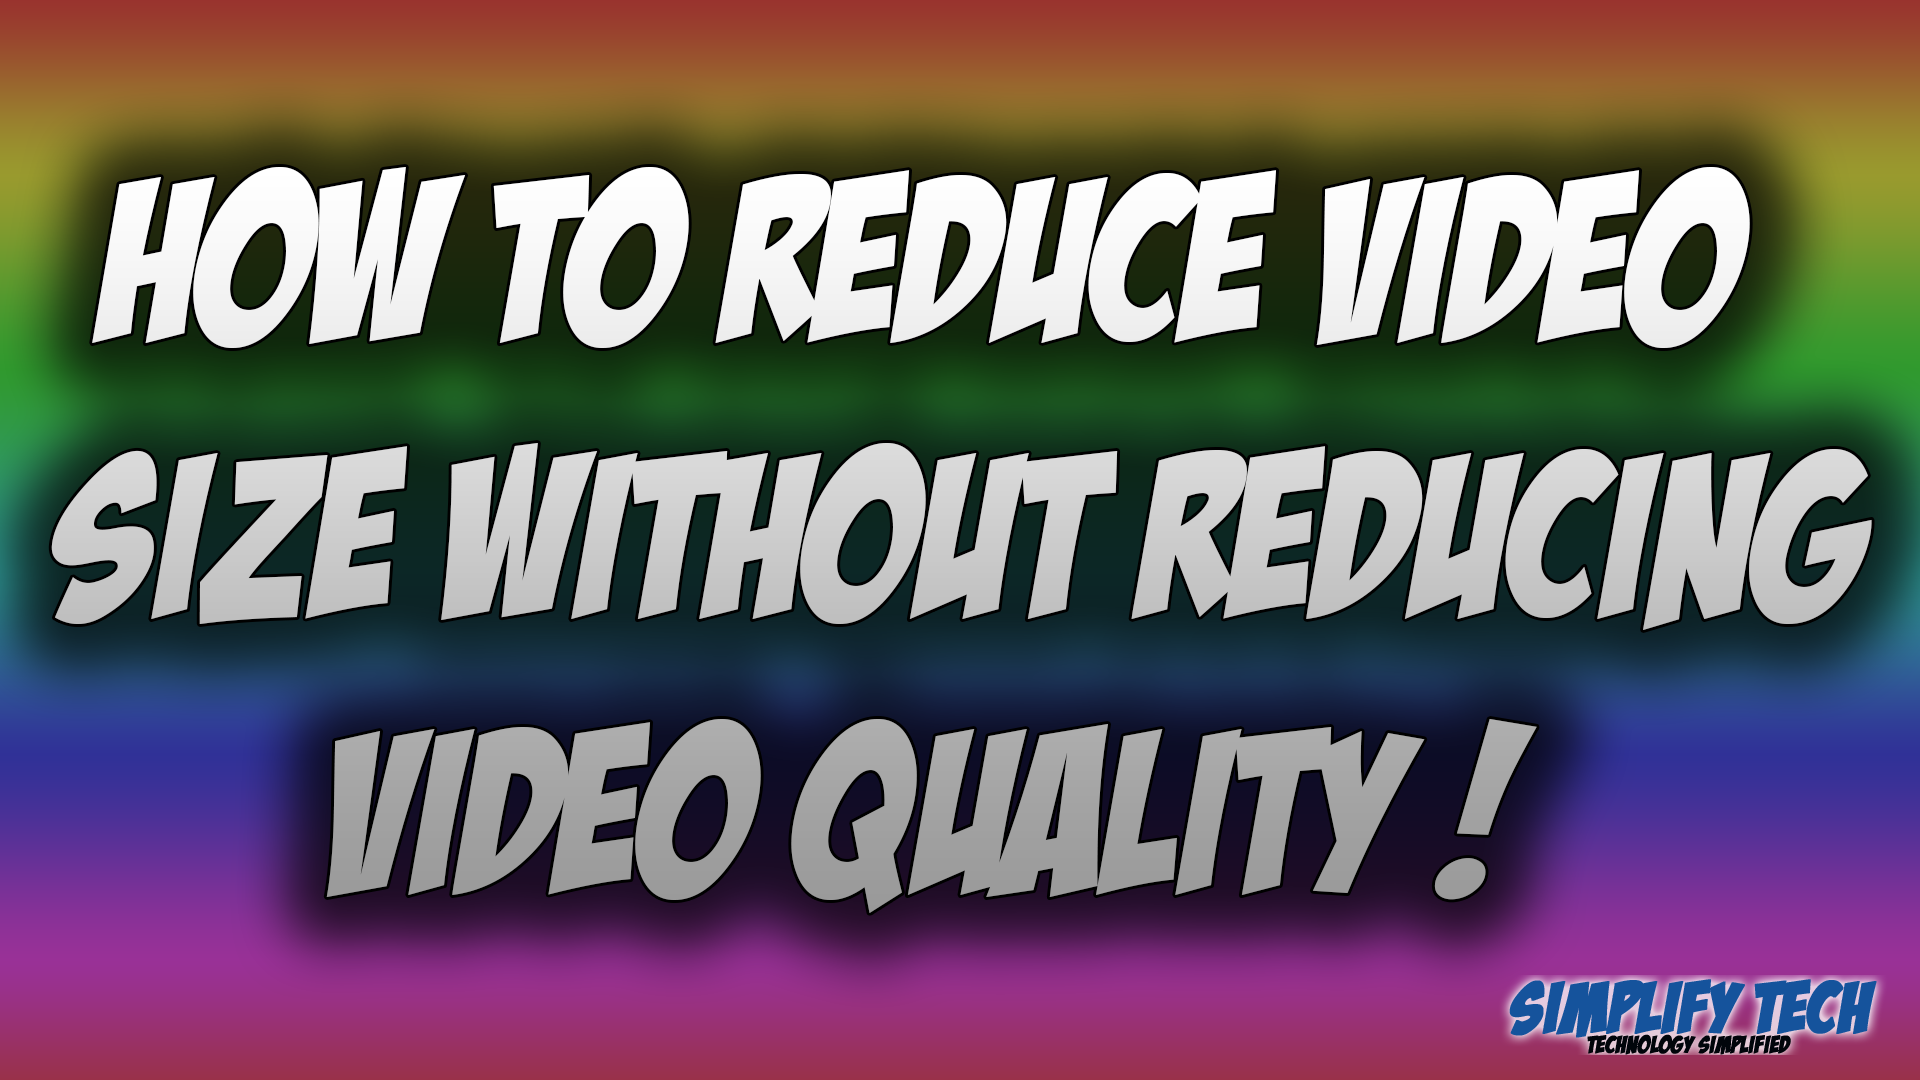 How To Reduce Video Size without Reducing Video Quality